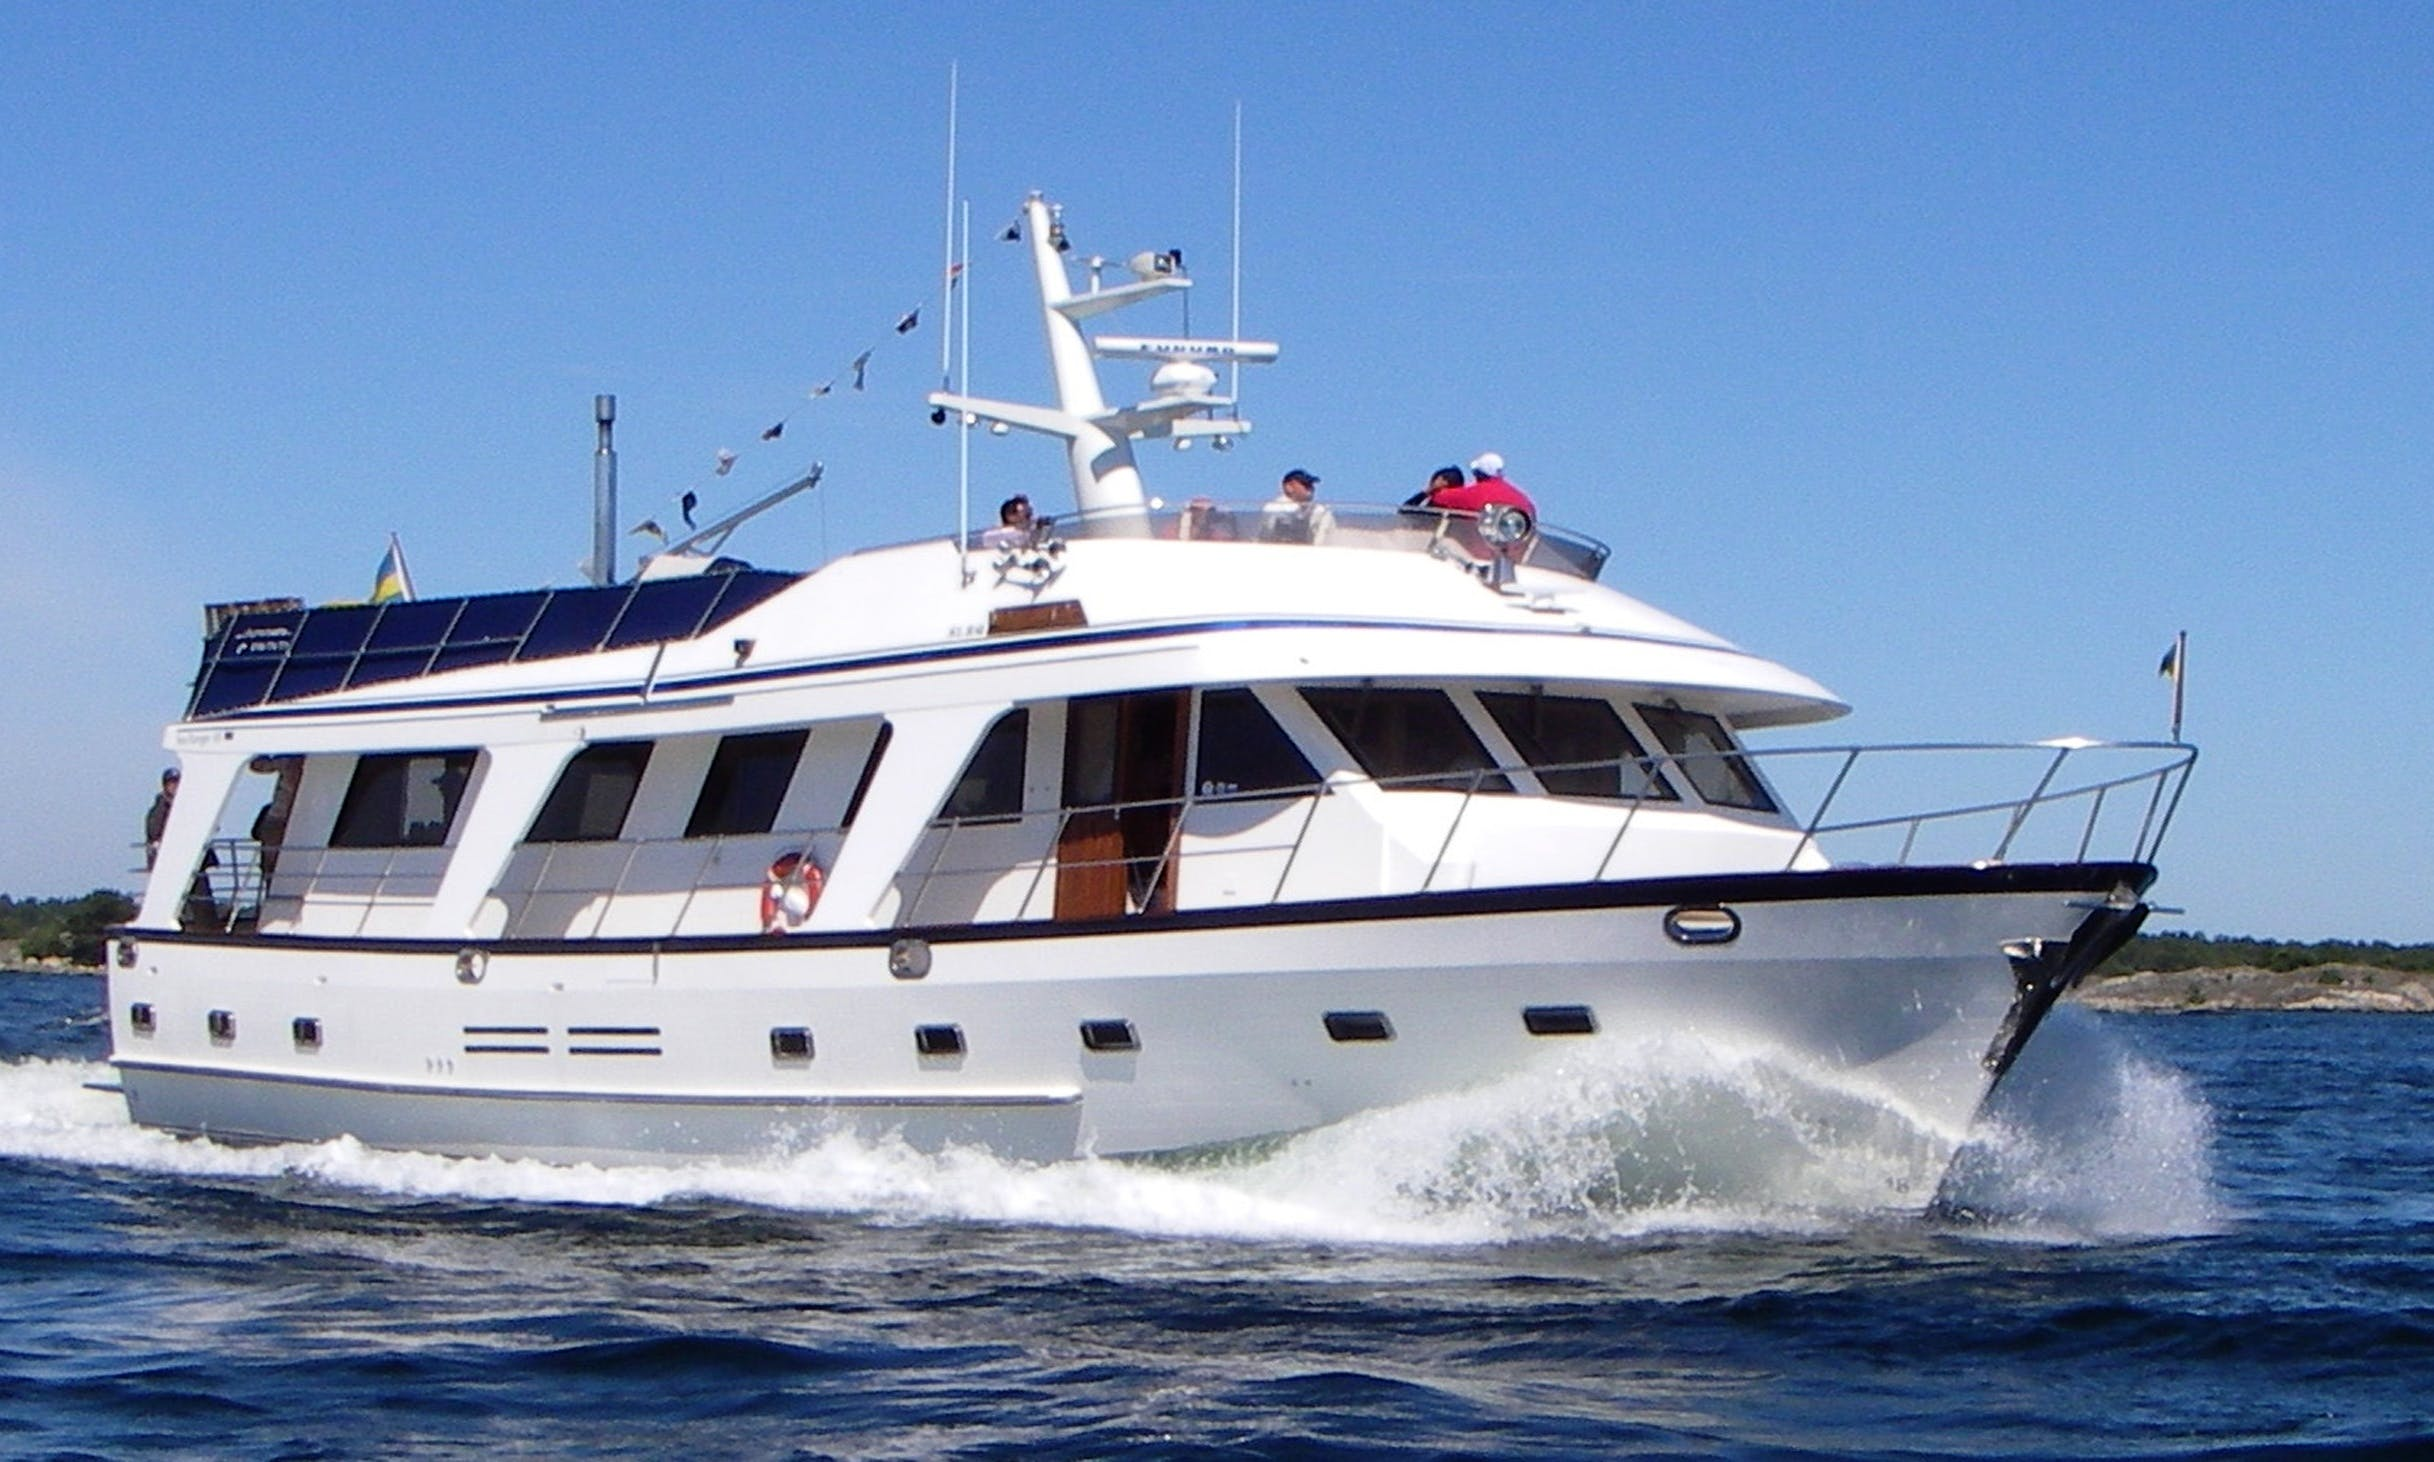 M/Y Charm, 65' Motor Yacht Charter in Stockholm, Sweden